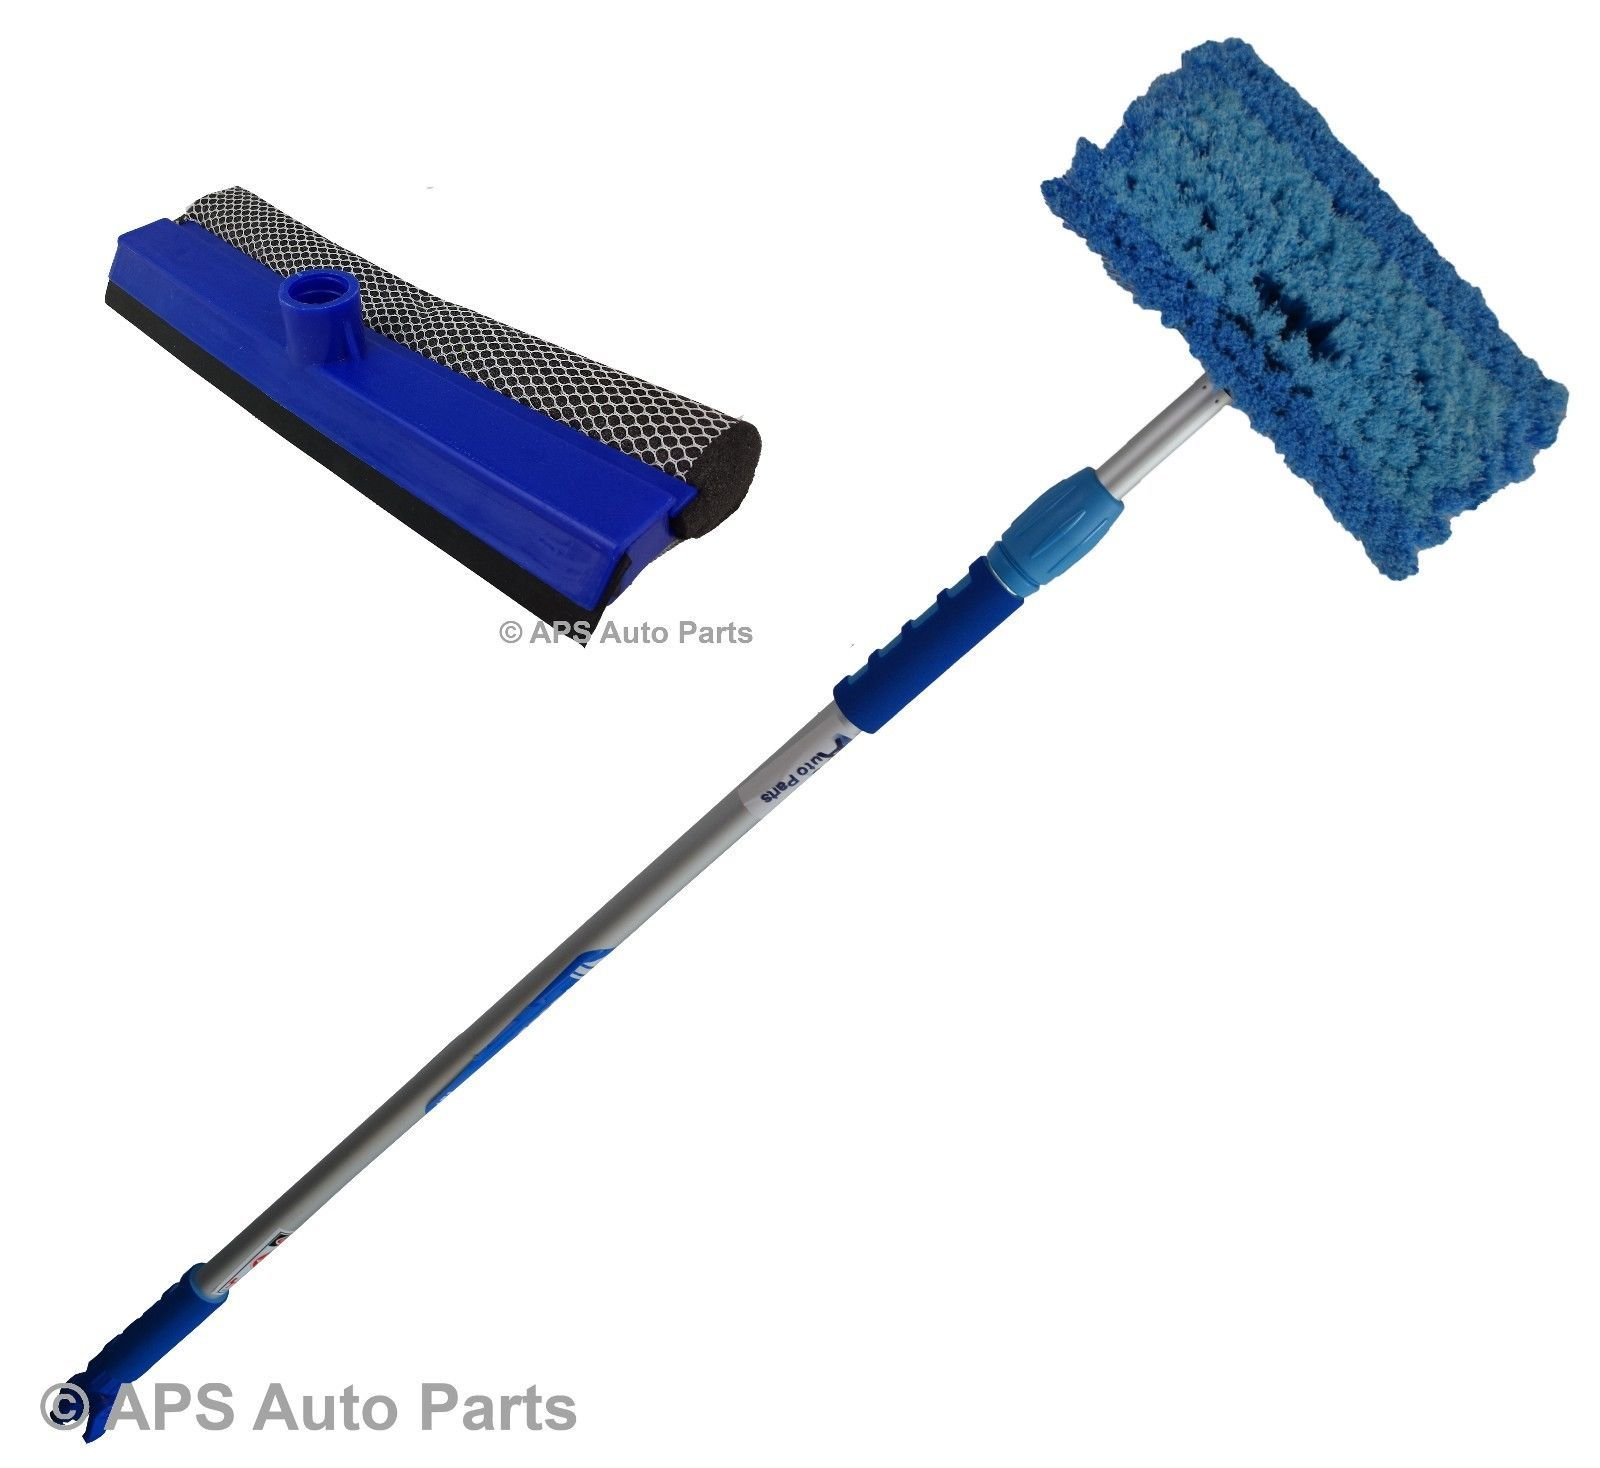 2m Aluminium Telescopic Water Fed Extending Wash Brush Squeegee